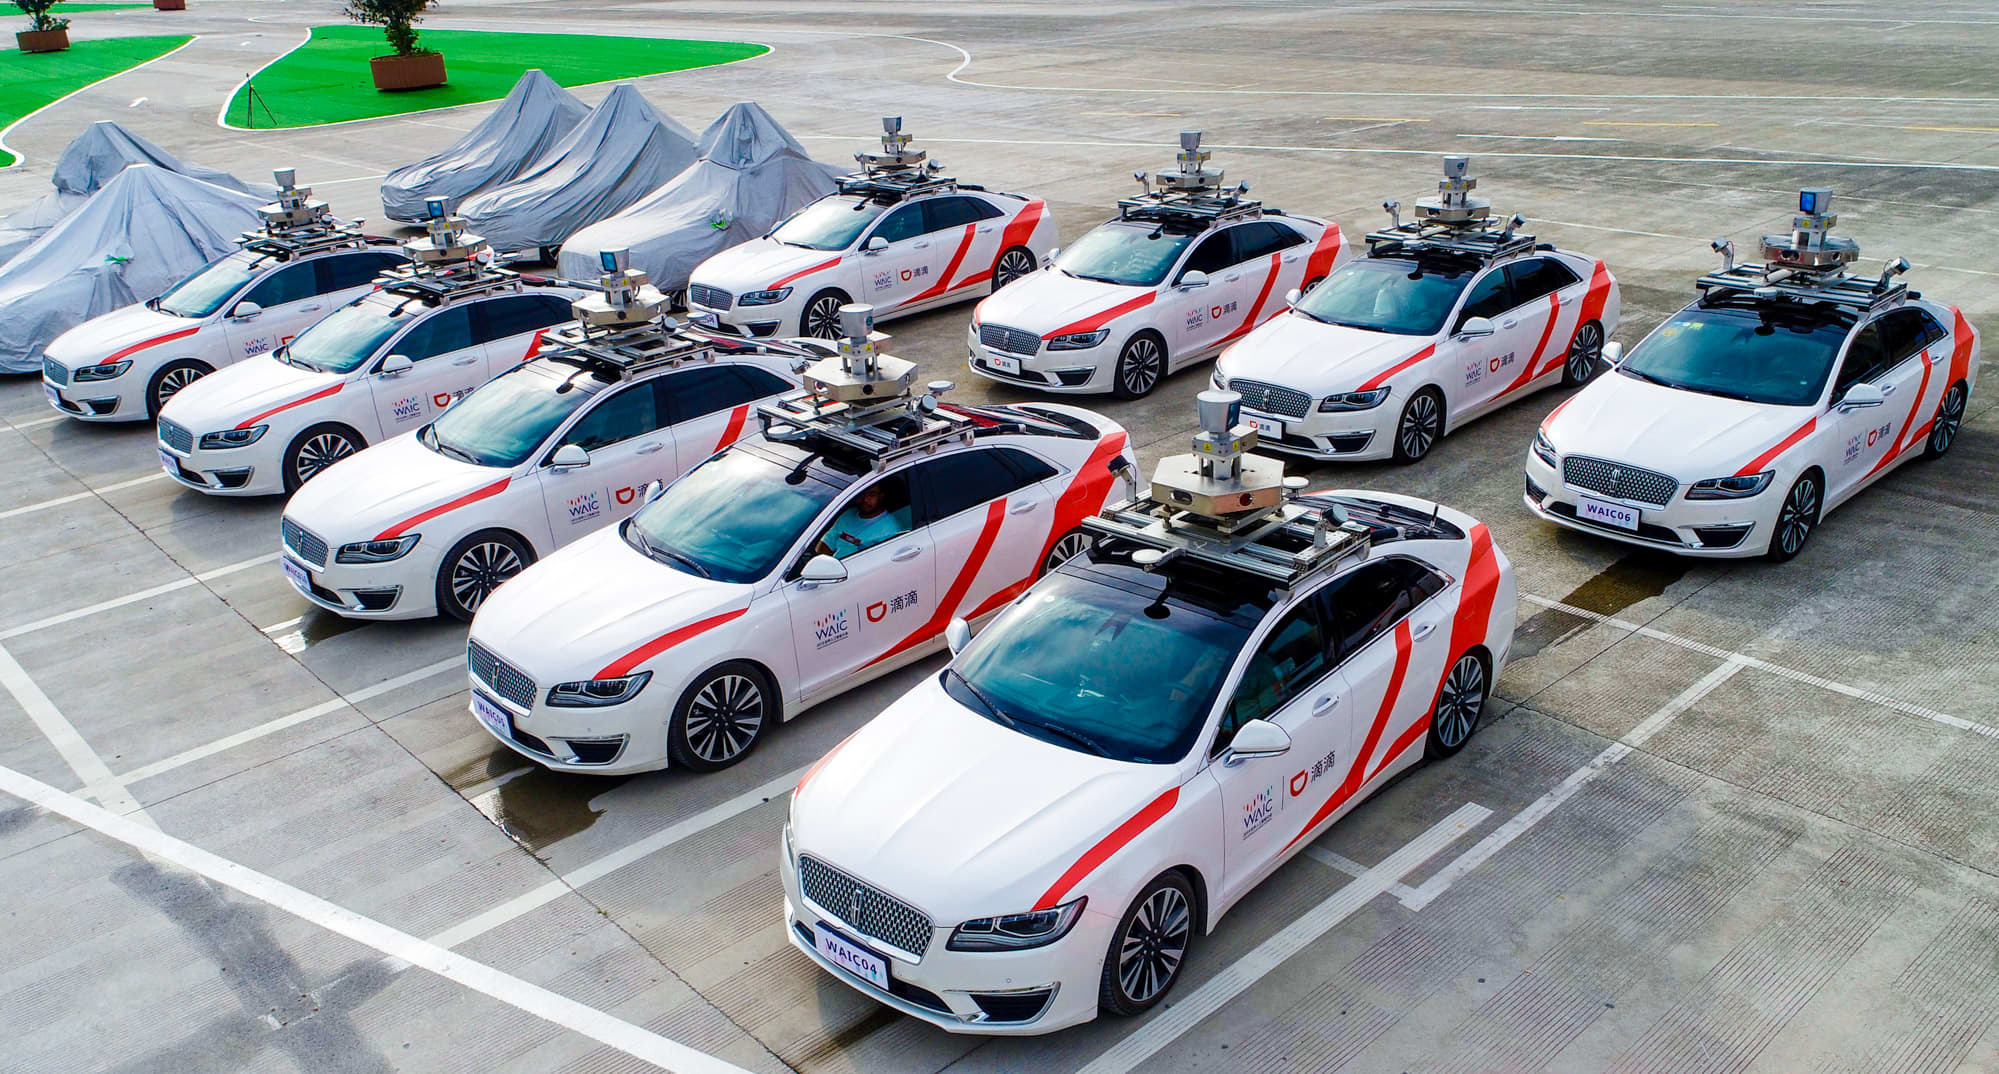 Chinese ride-hailing giant Didi plans to launch a robotaxi service in Shanghai